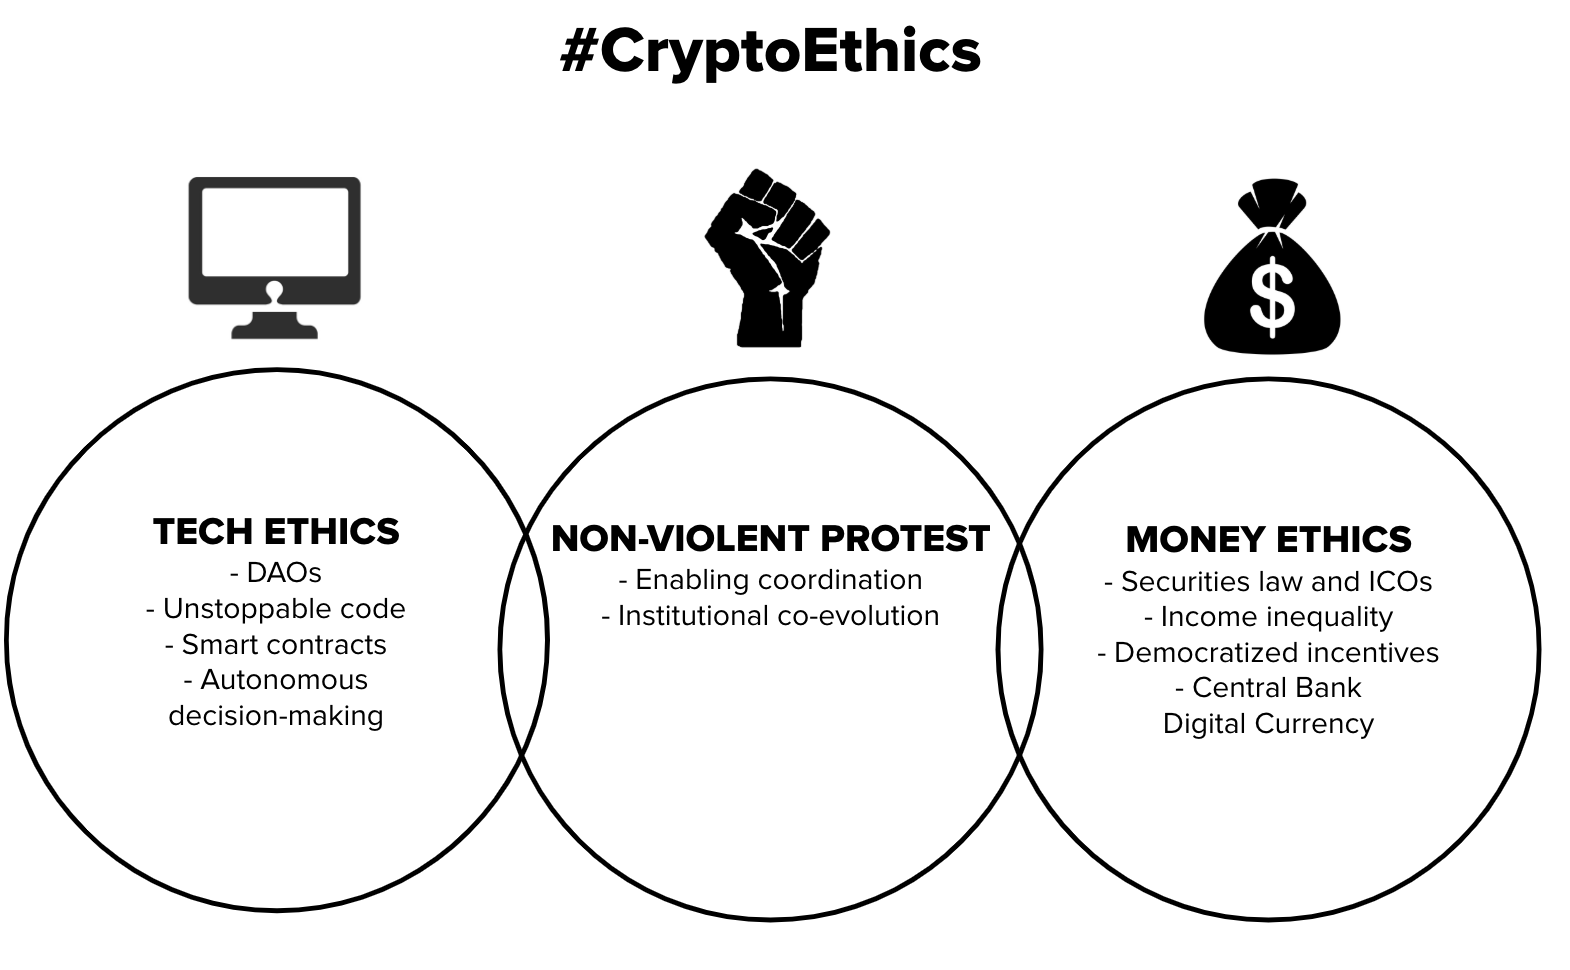 What is #CryptoEthics and Why Should We Care?